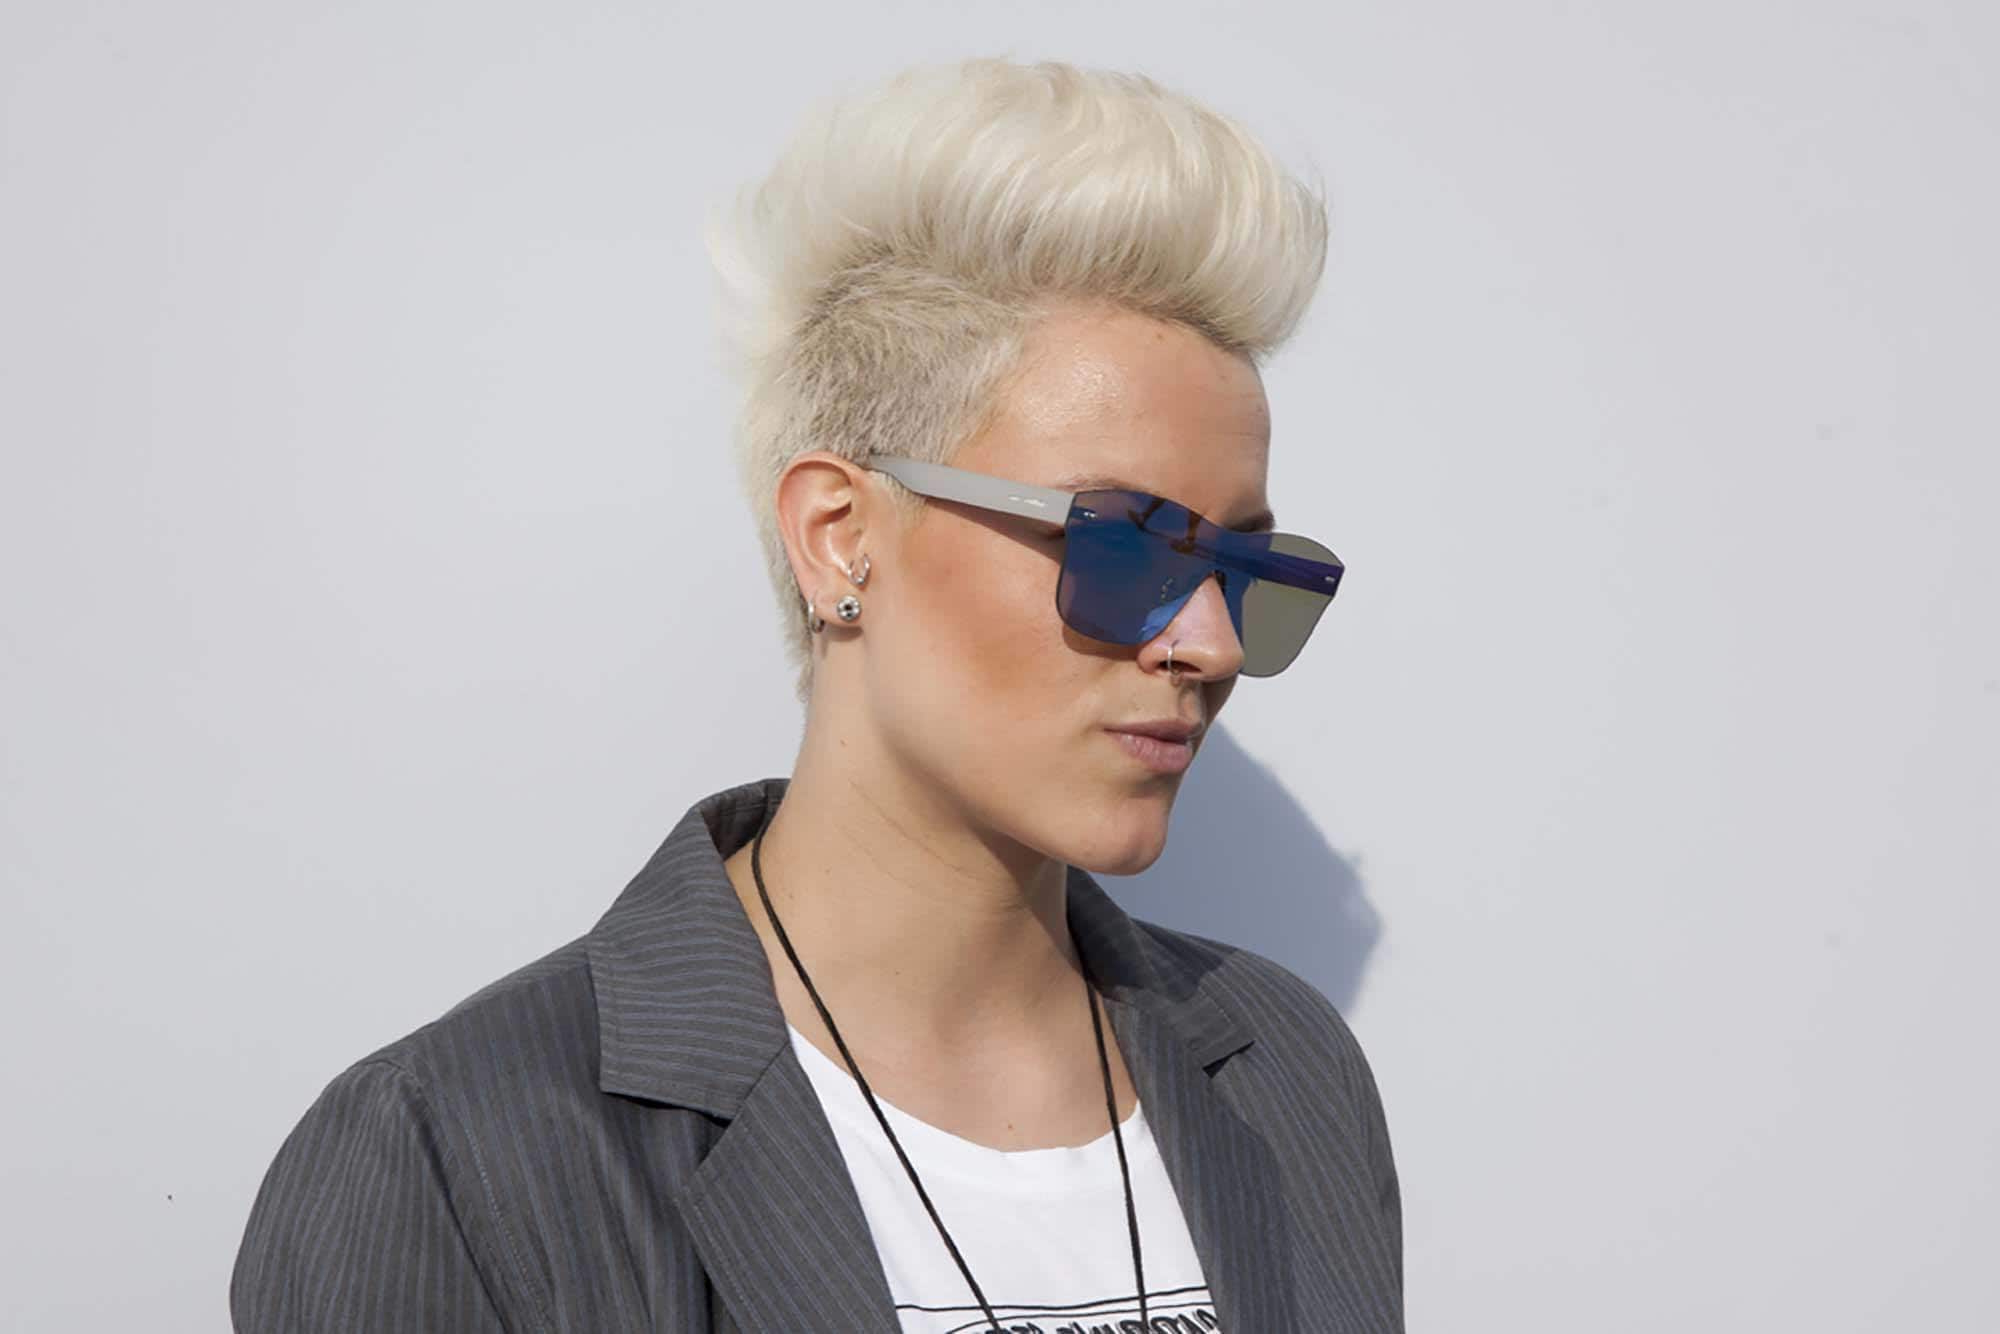 Short Spiky Haircuts For Women: 5 Edgy Hair Trends For Short Hair Pertaining To Short Spiked Haircuts (View 18 of 20)